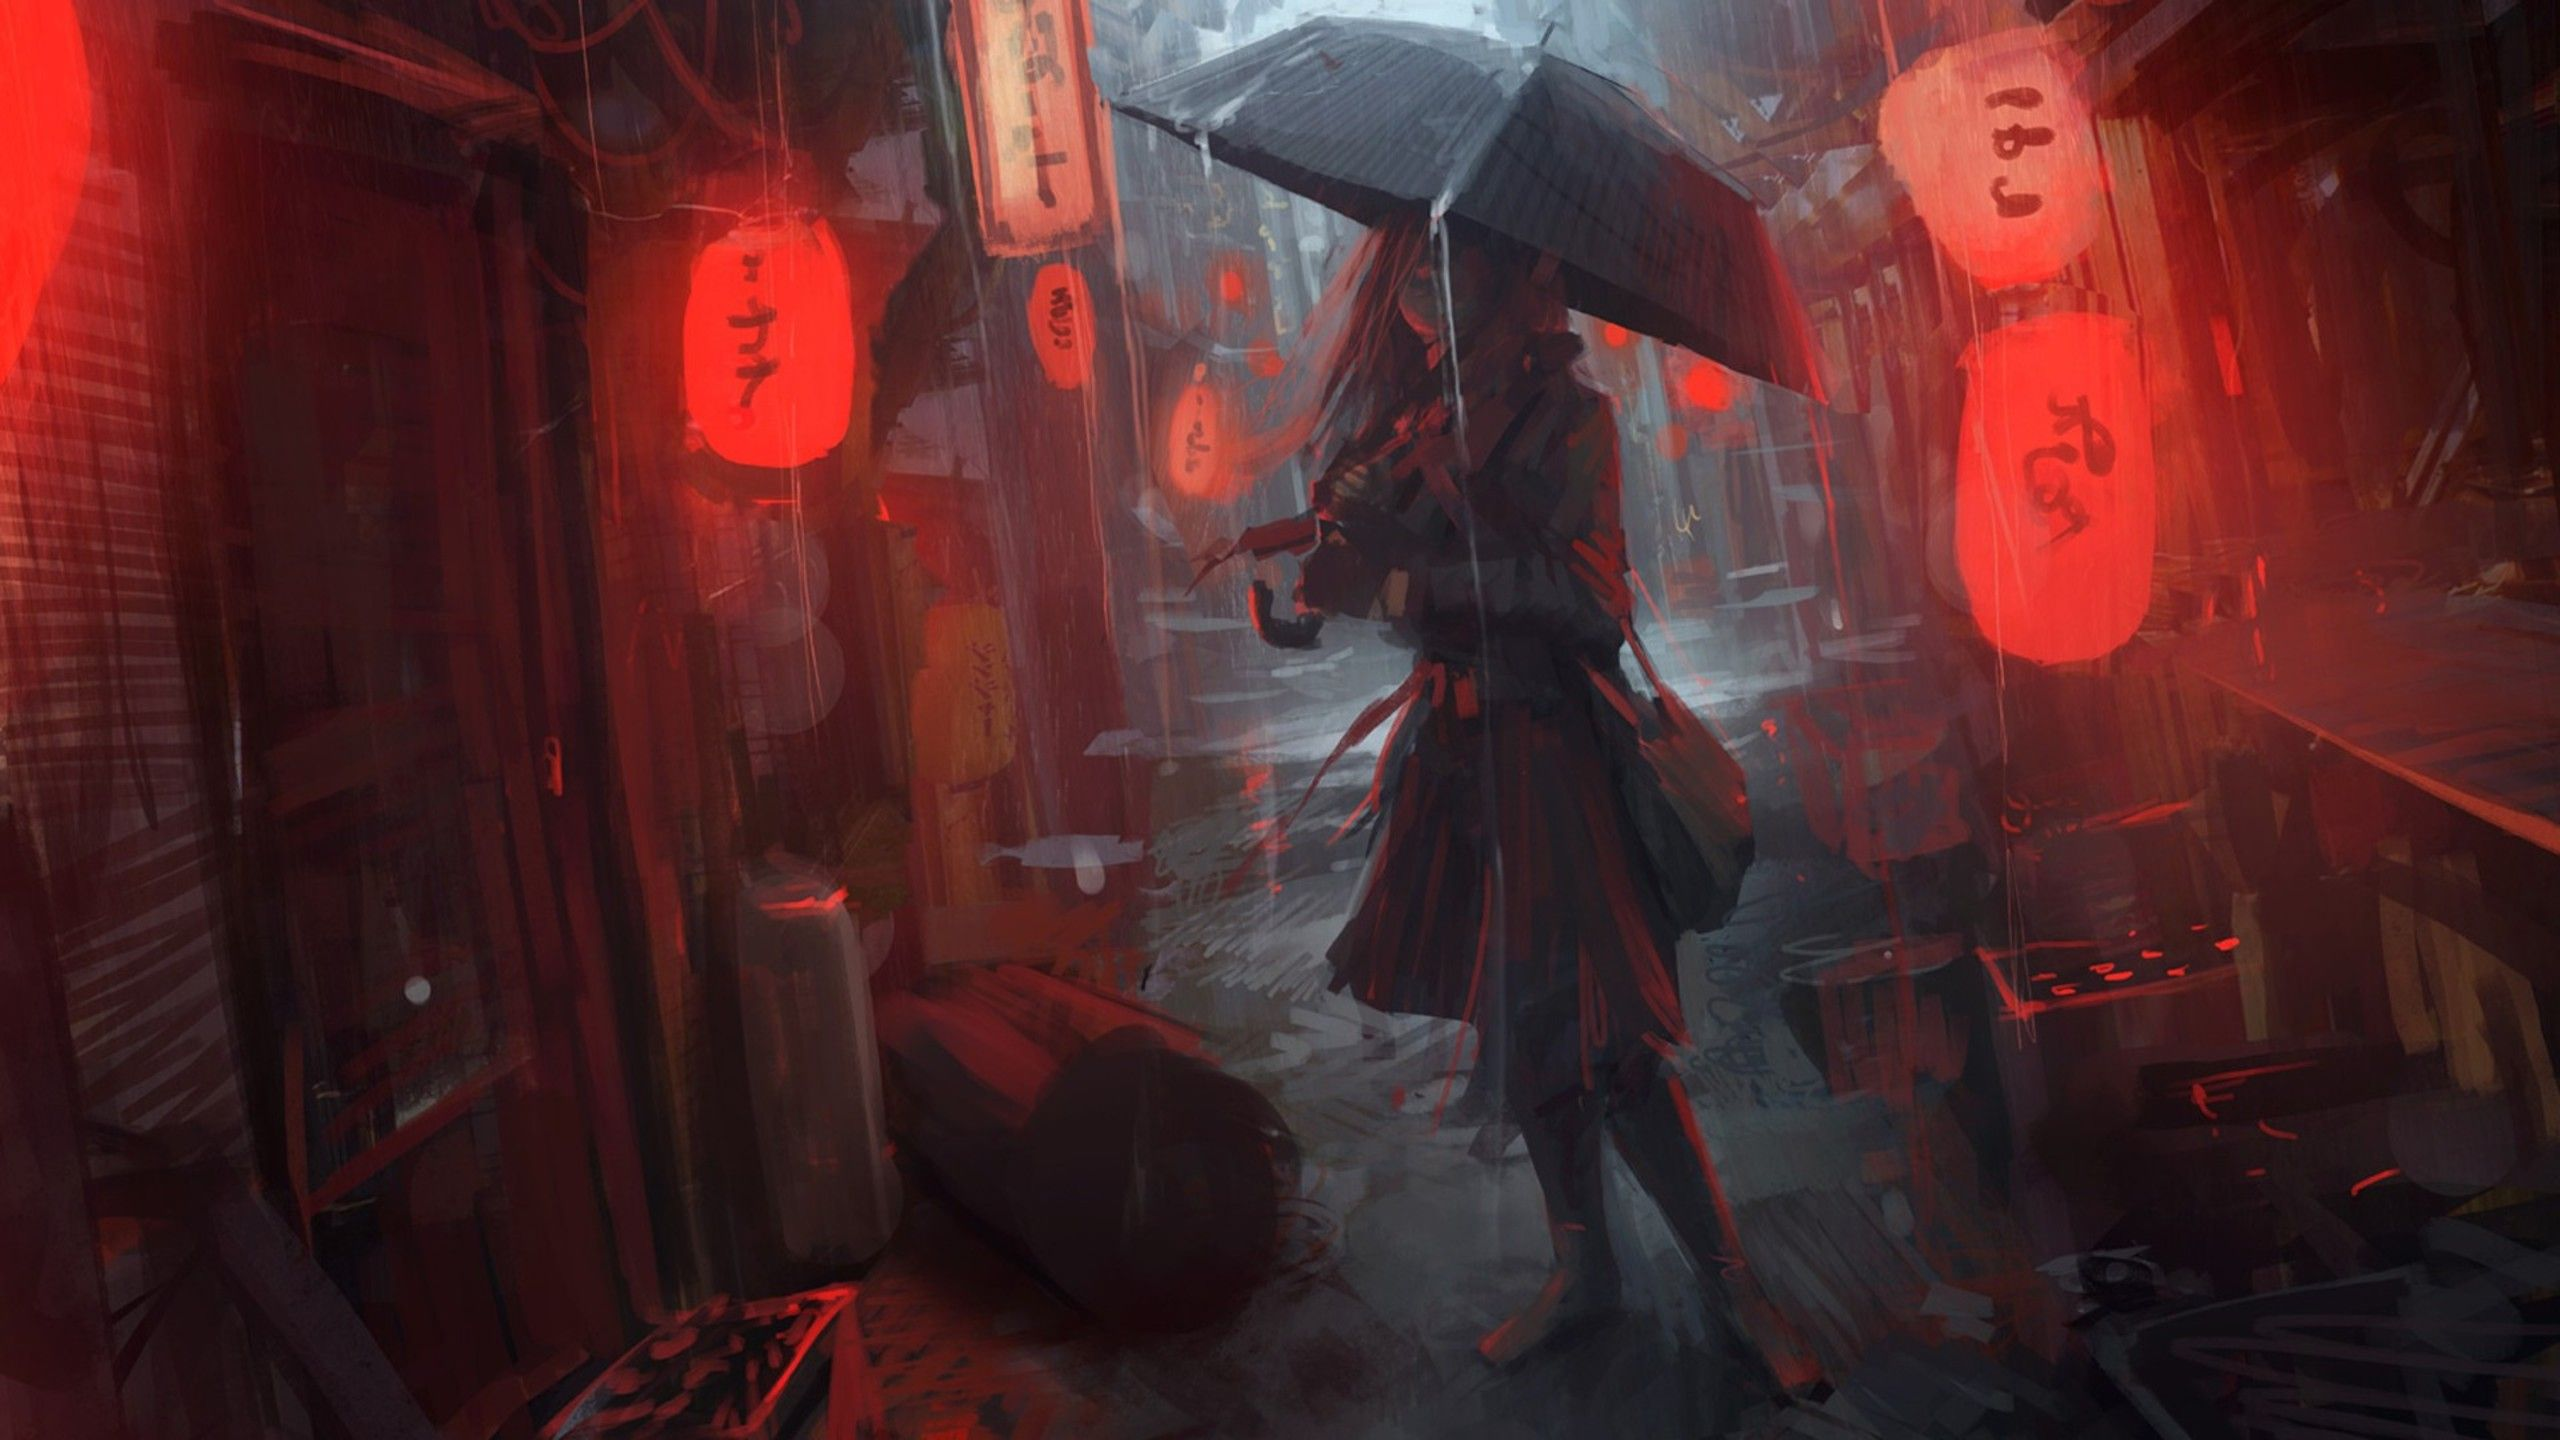 Lost In Rain With Images Digital Art Anime Rain Wallpapers